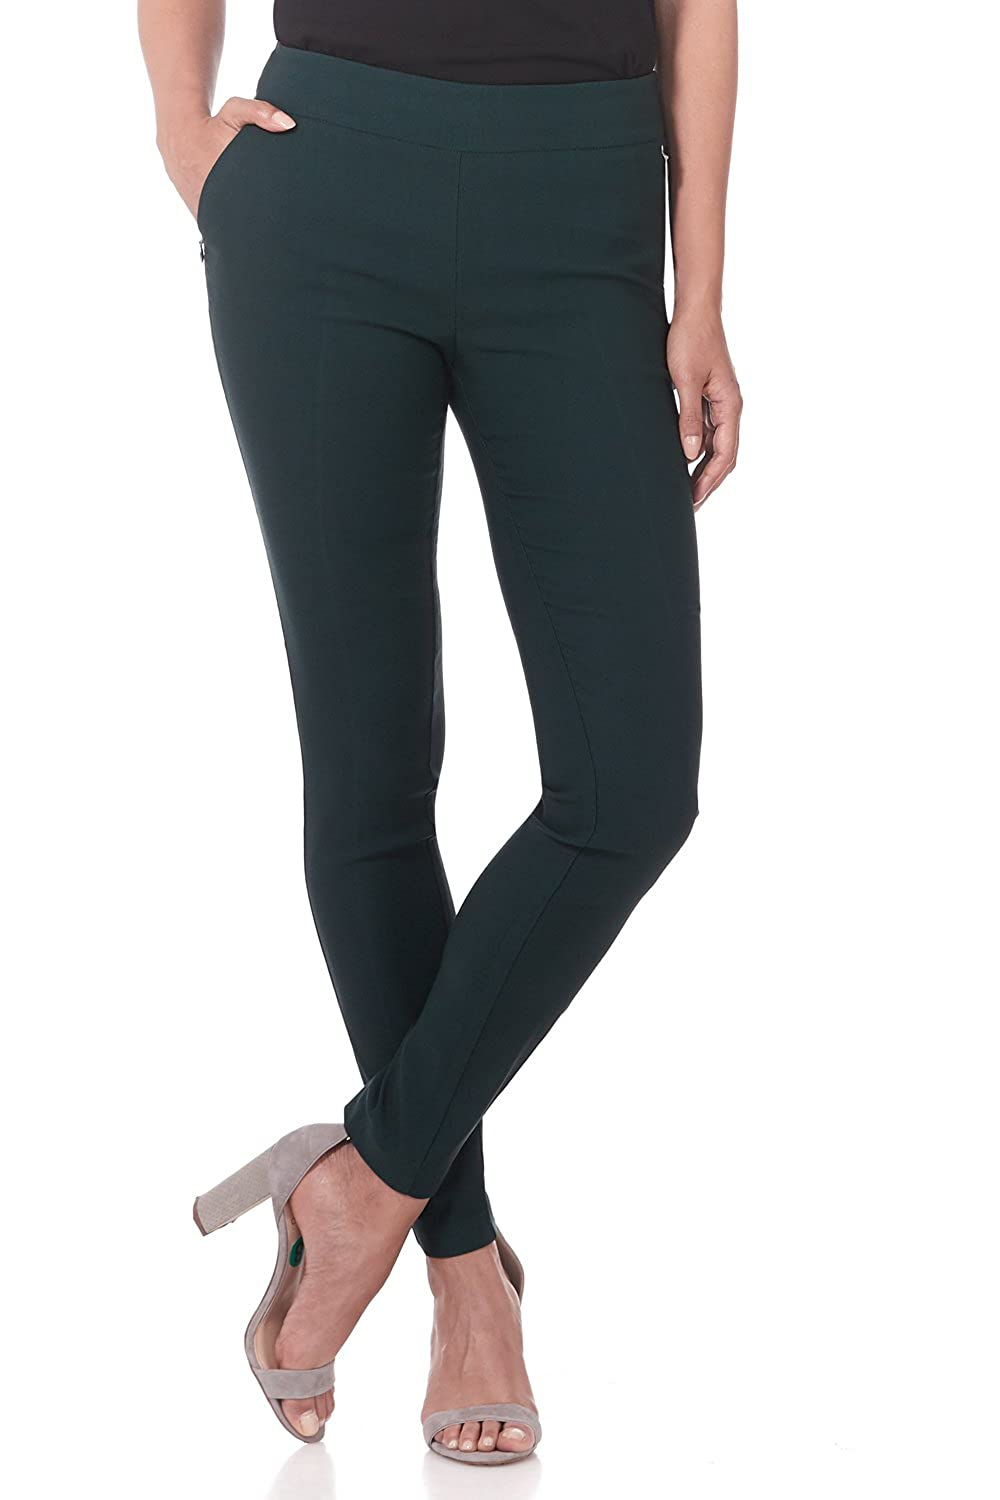 Hunter Green Rekucci Women's Ease in to Comfort Modern Stretch Skinny Pant w Tummy Control